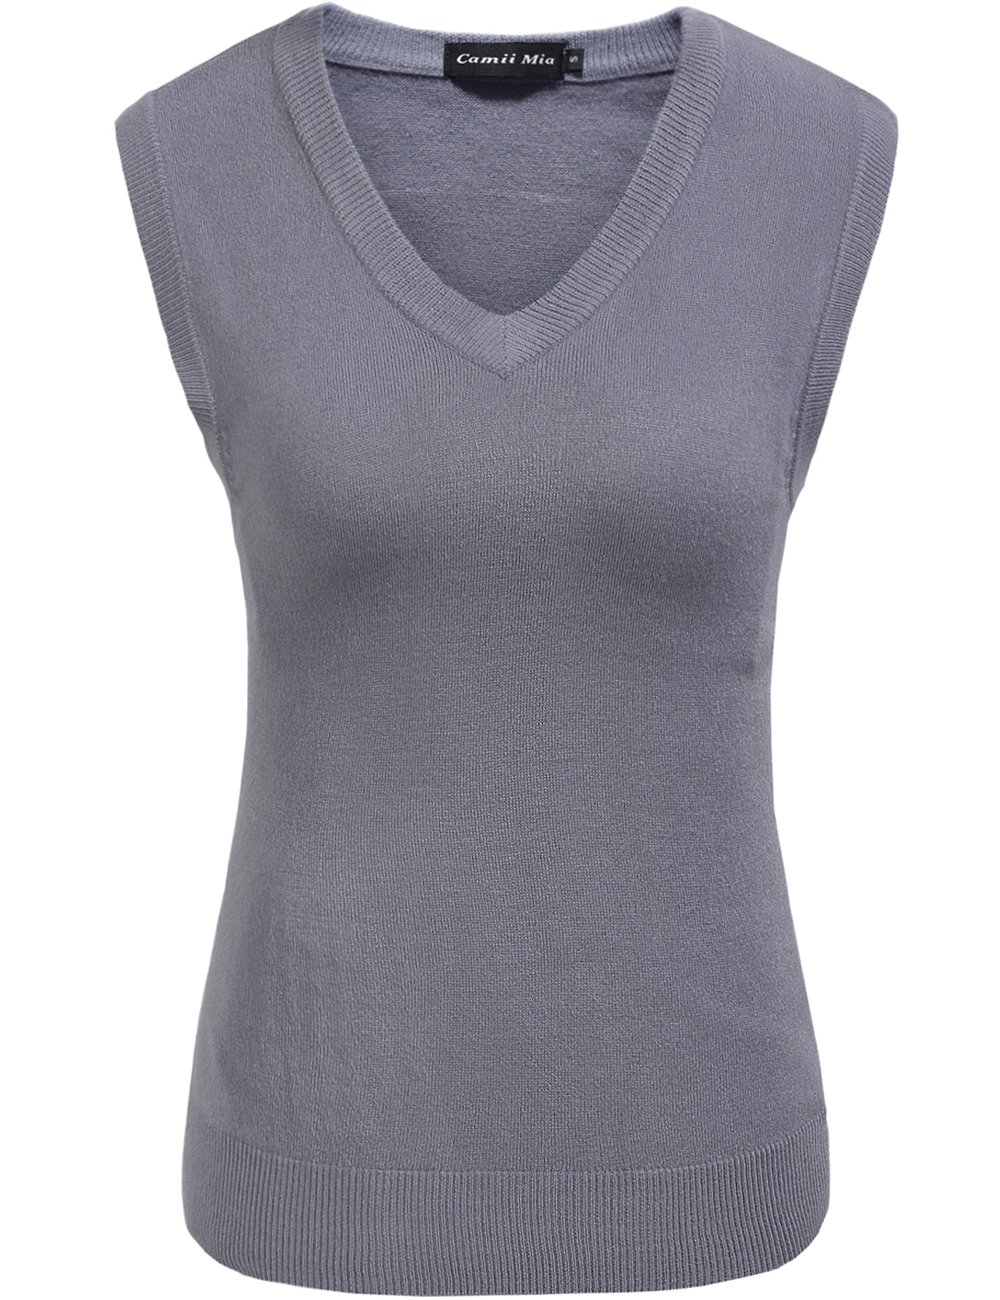 Camii Mia Women's Solid Knit Classic V Neck Sleeveless Pullover Sweater Vest (Large, Grey)